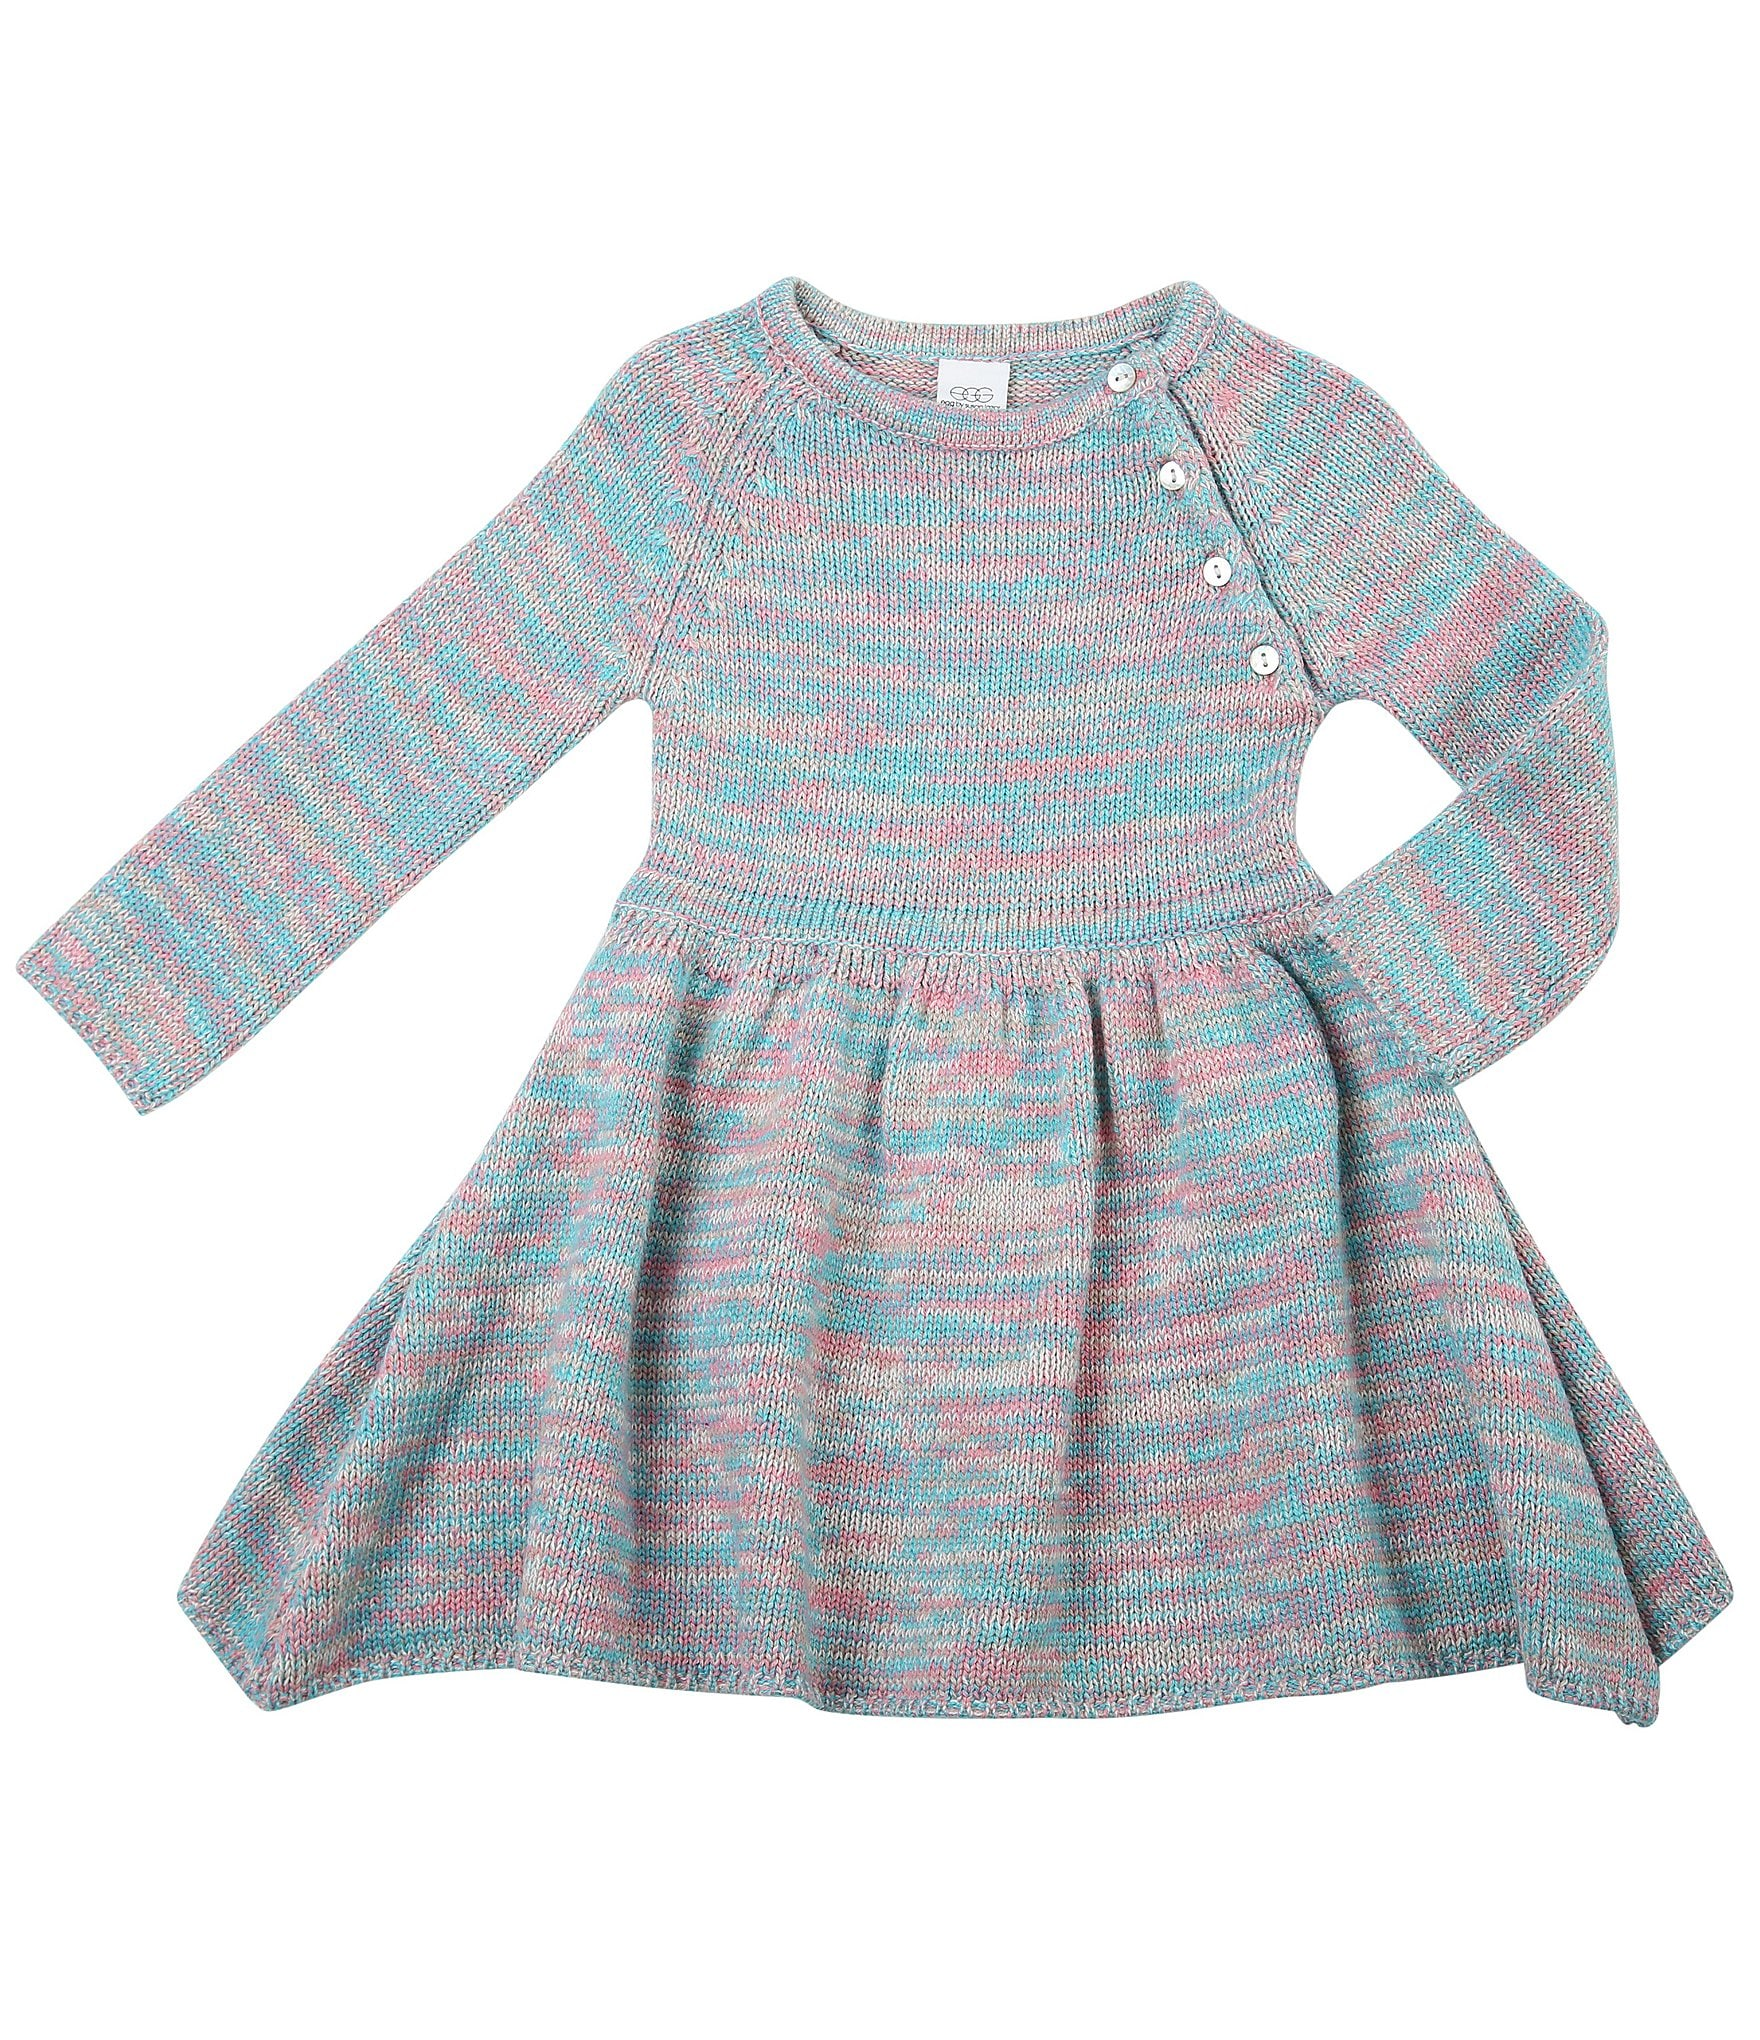 2T Girls Sweater Dress. Pre-Owned. Mac Baaa 2 2T Sweater NEW Ivory Wool Long Sleeve Pullover Pink Blue Flowers Girl. Brand New · Size:2T · Pullover. $ Buy It Now +$ shipping. SPONSORED. Red Christmas Girls' Santa Tunic Sweater 2T Alex Stevens Holiday Santa Claus.